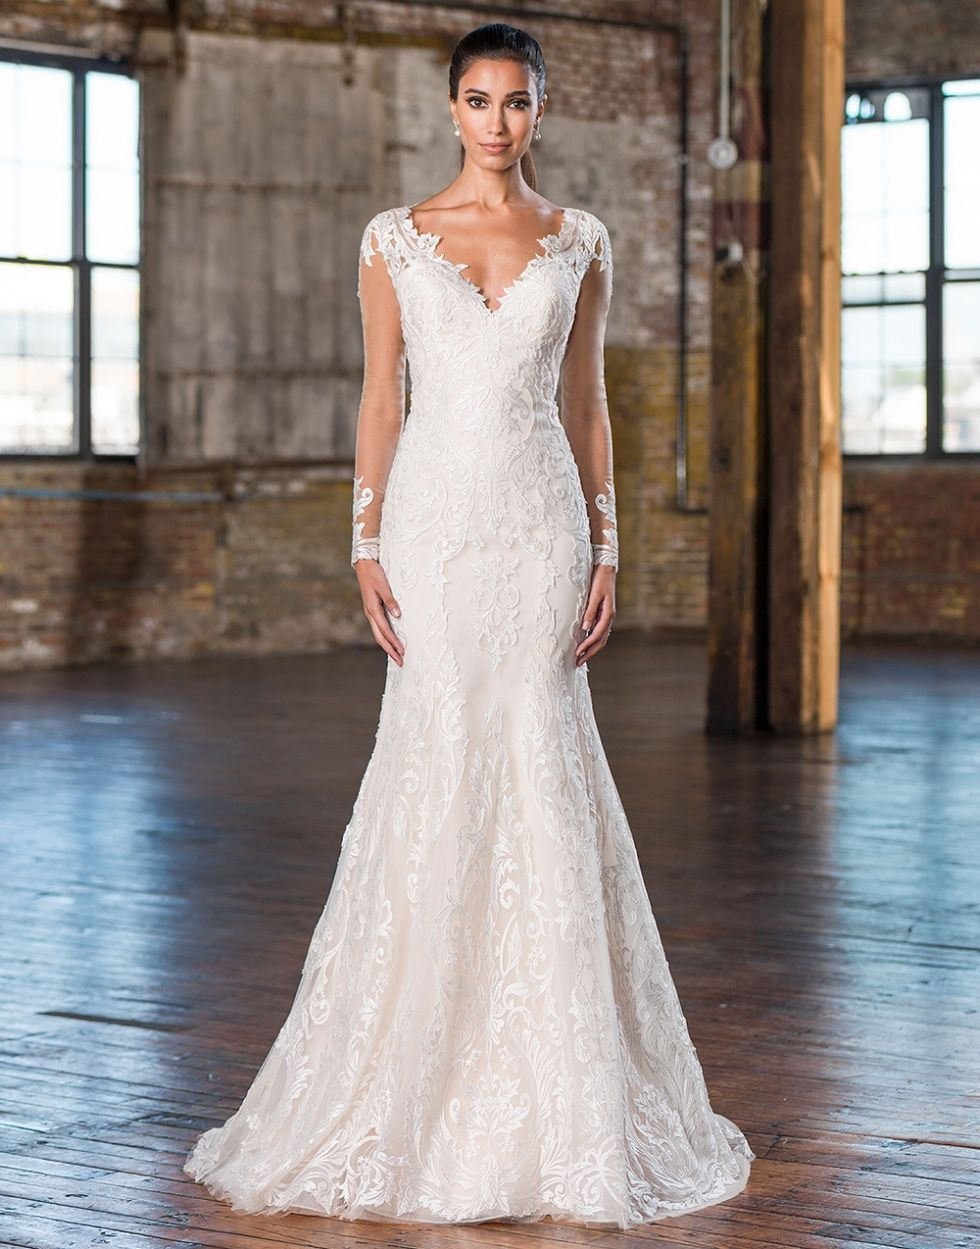 long sleeve wedding dress with v neck and lace top to bottom. Sheath ...